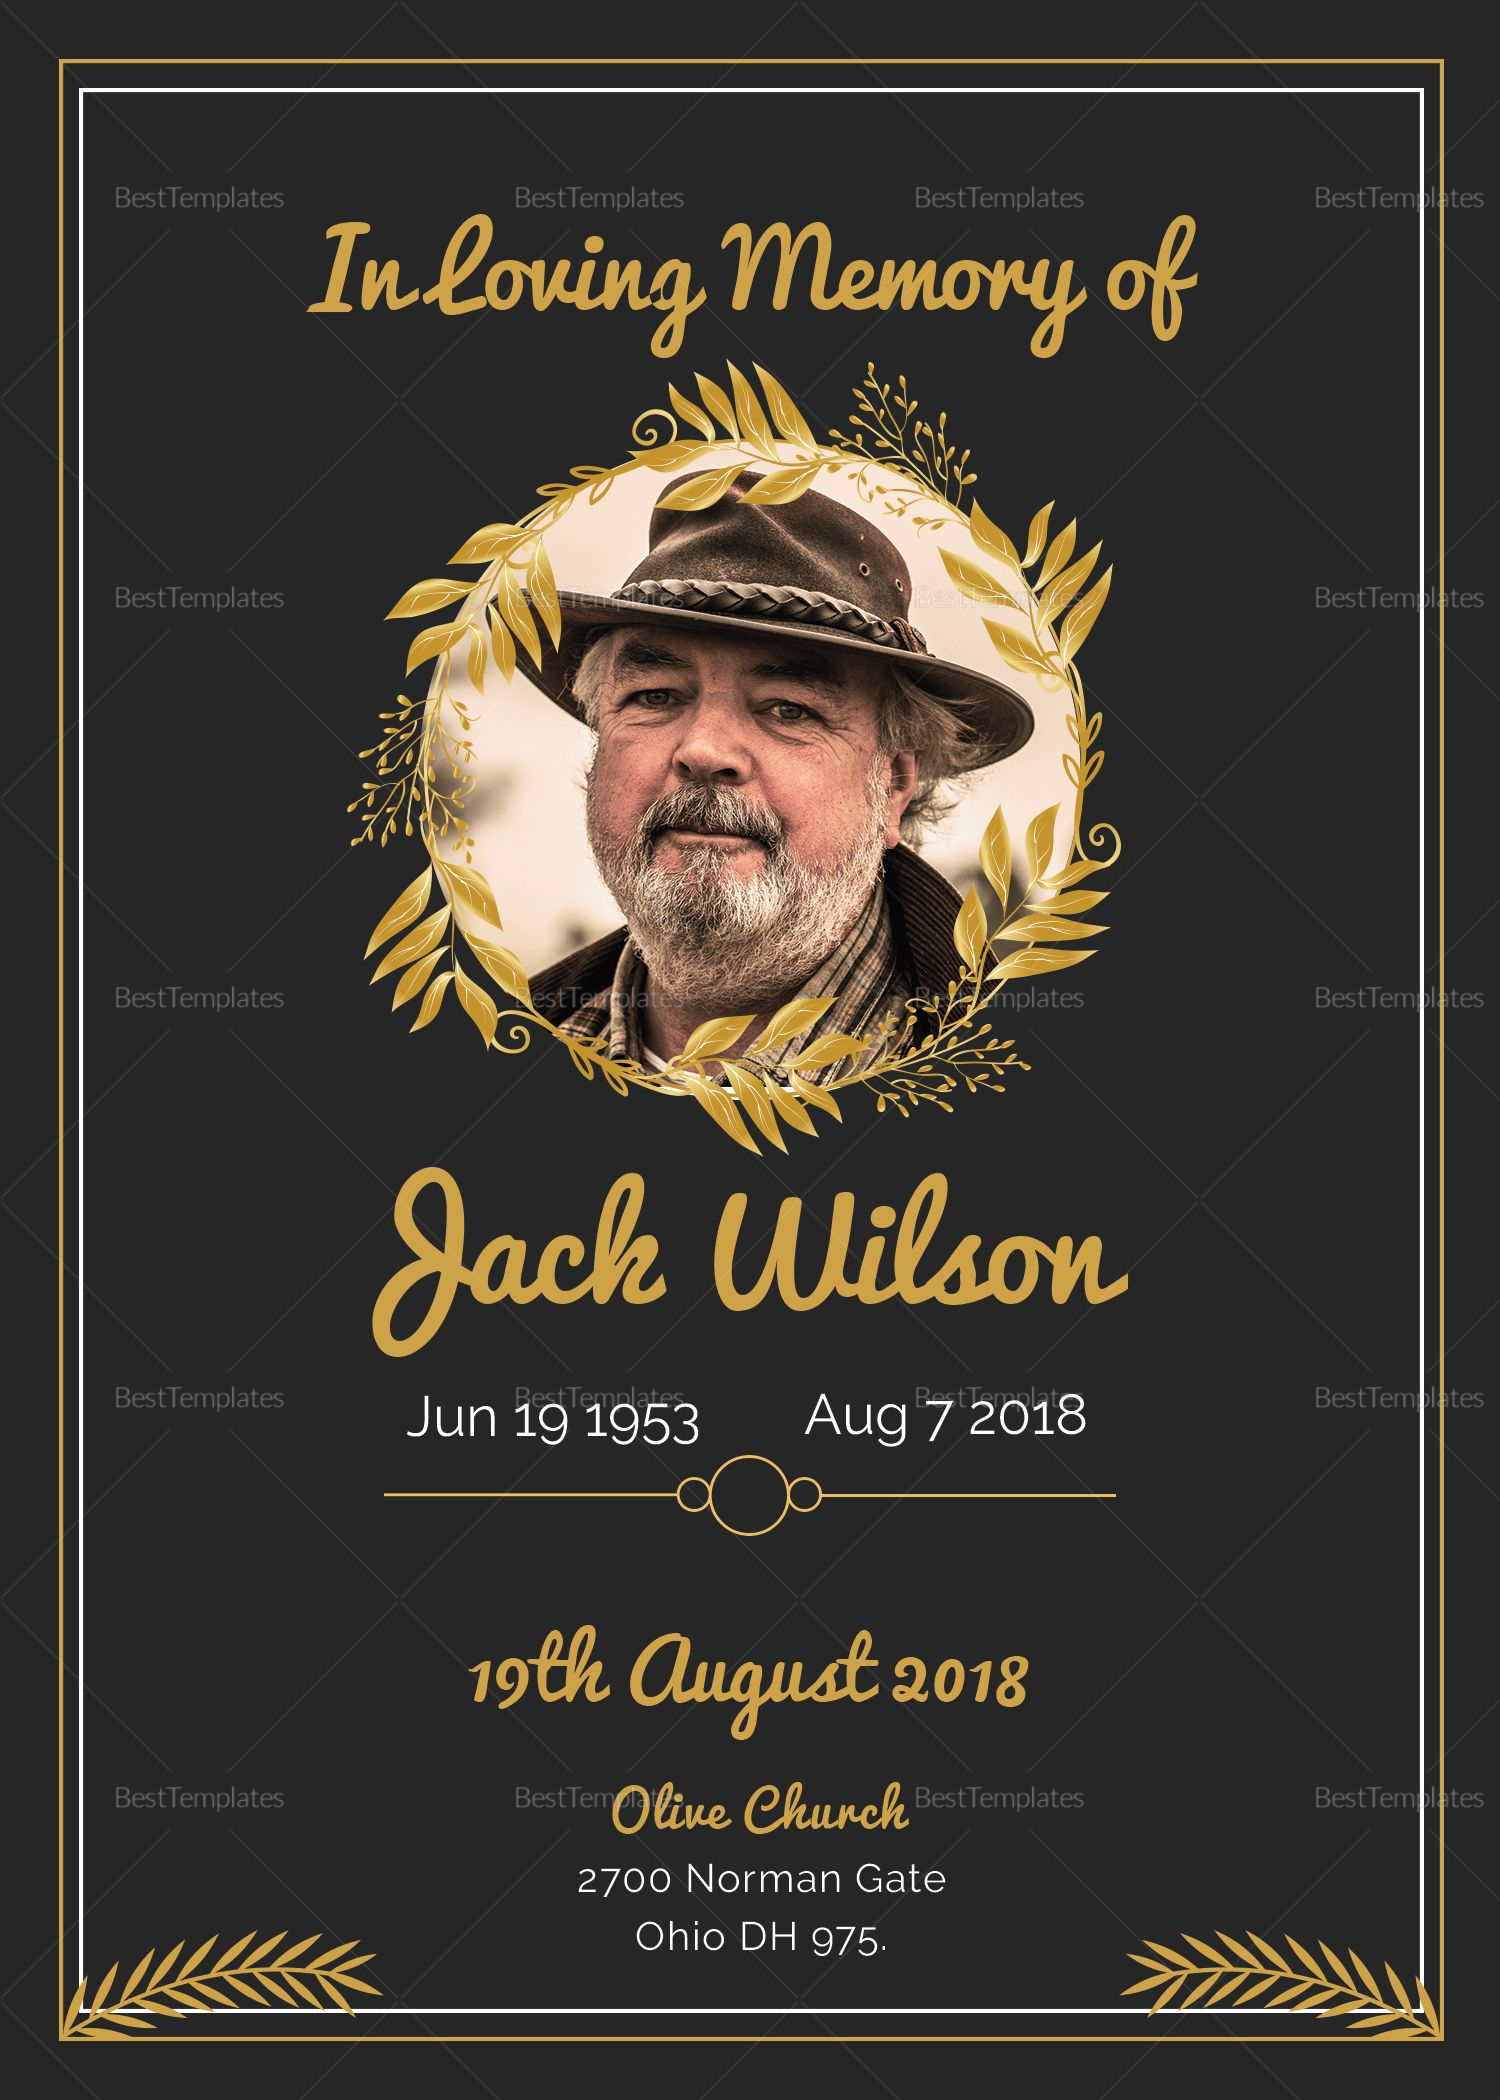 Pino Free Jay On Celebration Of Life   Funeral In Funeral Invitation Card Template